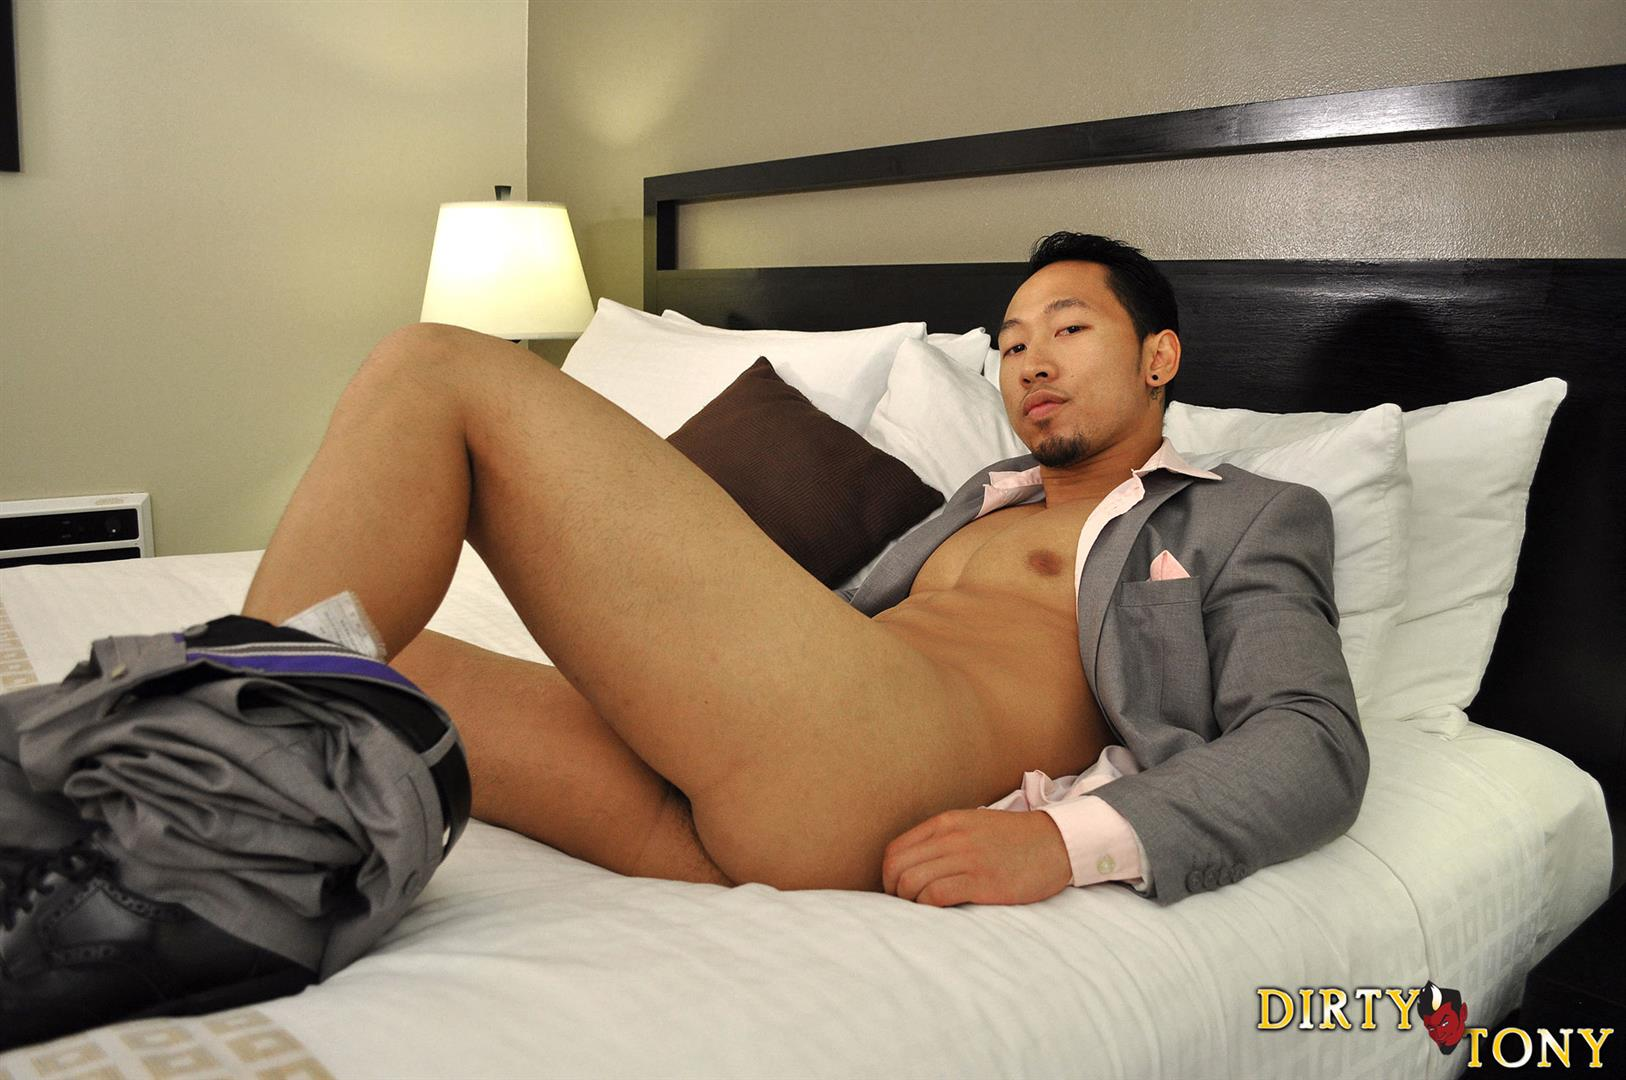 Dirty Tony Ryan Allen Asian Guy In Suit With A Big Asian Cock Jerk Off Amateur Gay Porn 03 Amateur Asian Guy In Business Suit Stroking His Huge Asian Cock